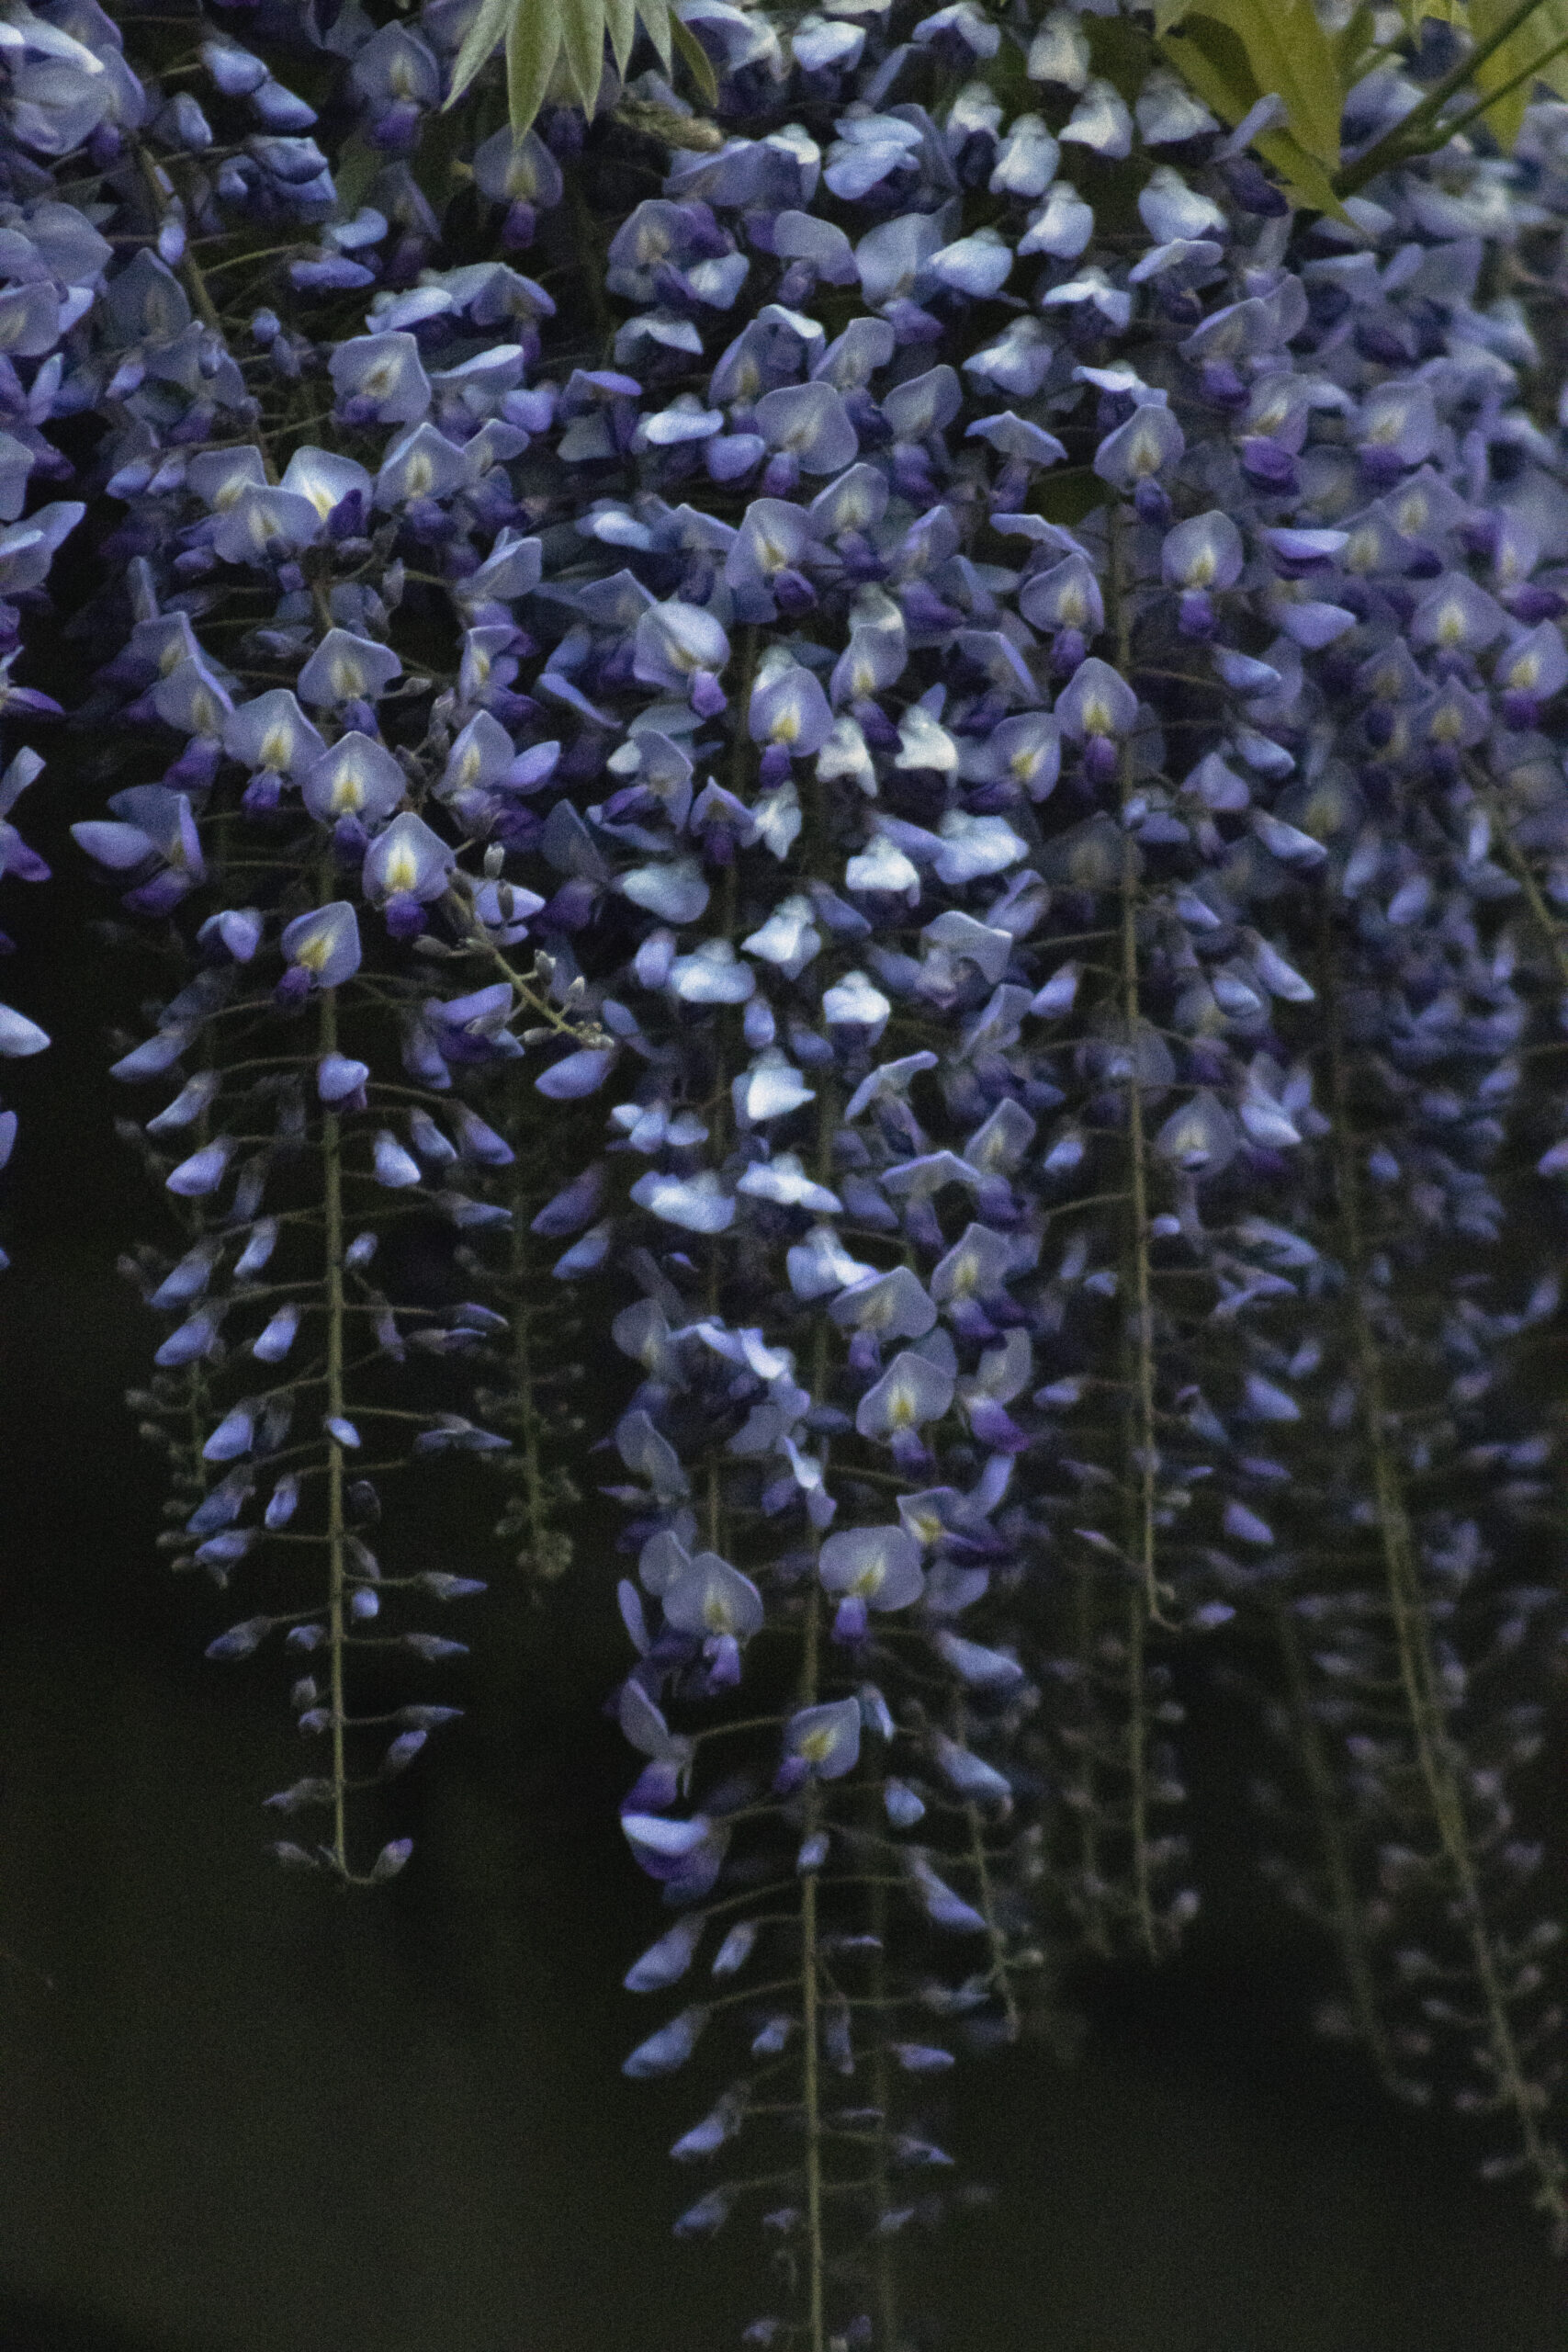 Wisteria Blooms, May 13 2021